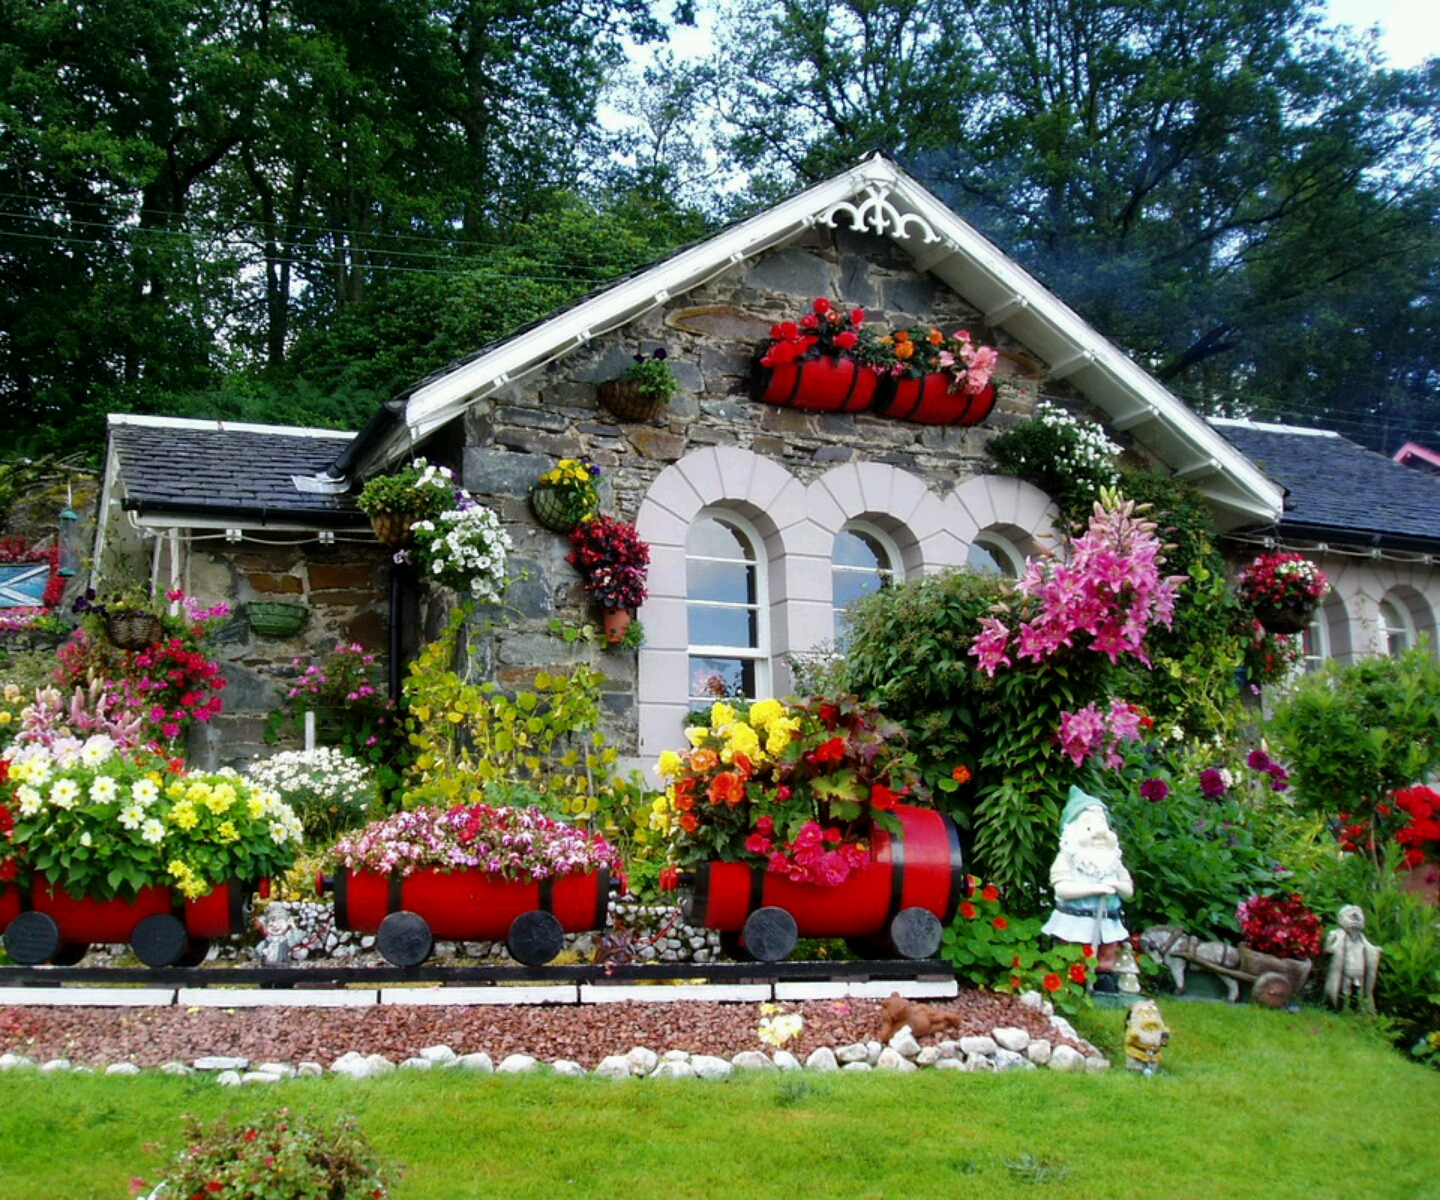 New home designs latest beautiful gardens designs ideas for Beautiful small home gardens